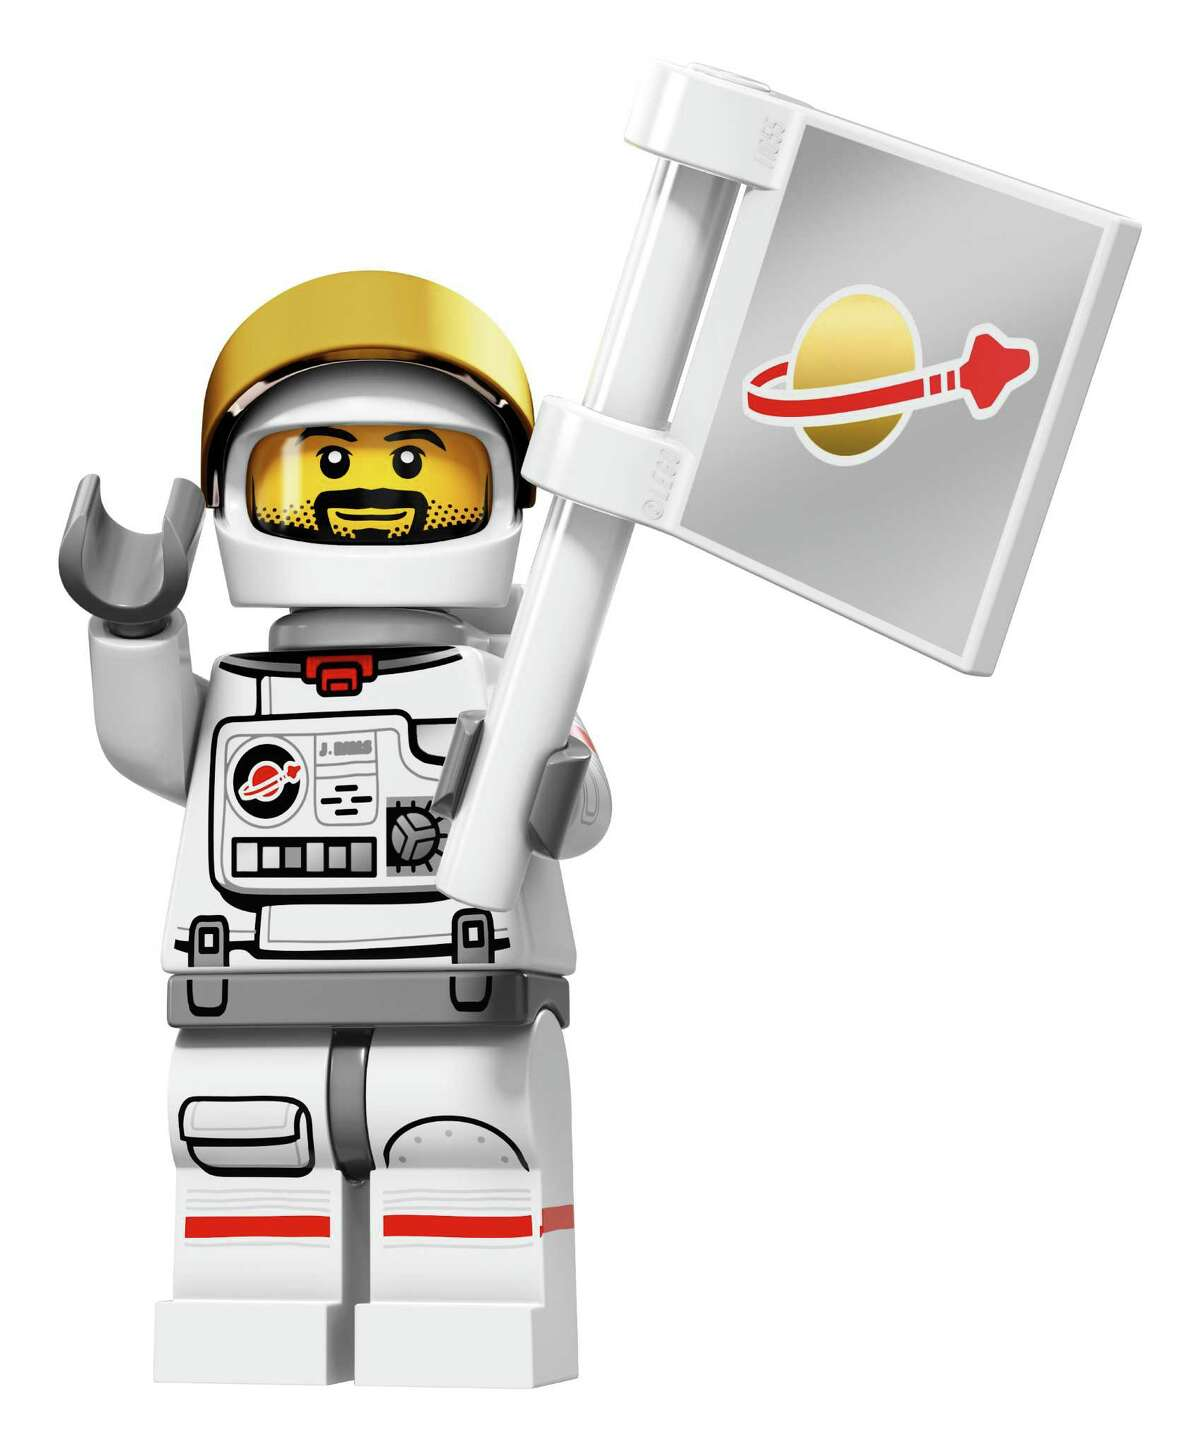 Astronaut . This astronaut is obsessed with space and ready for his first trip to a new planet. Complete with a flag and long beard.